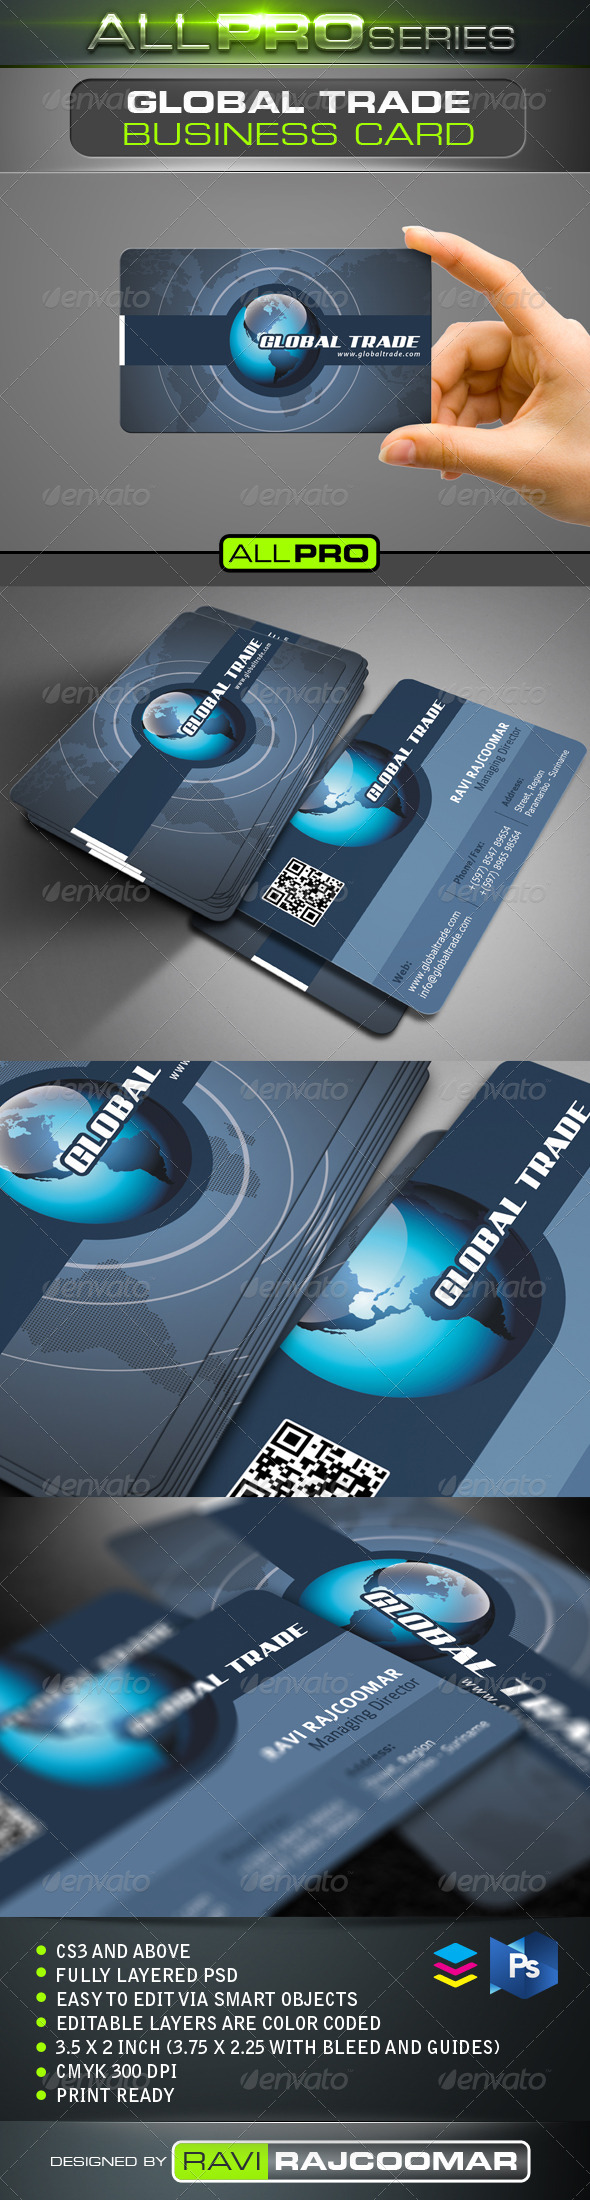 Global Trade Business Card - Corporate Business Cards